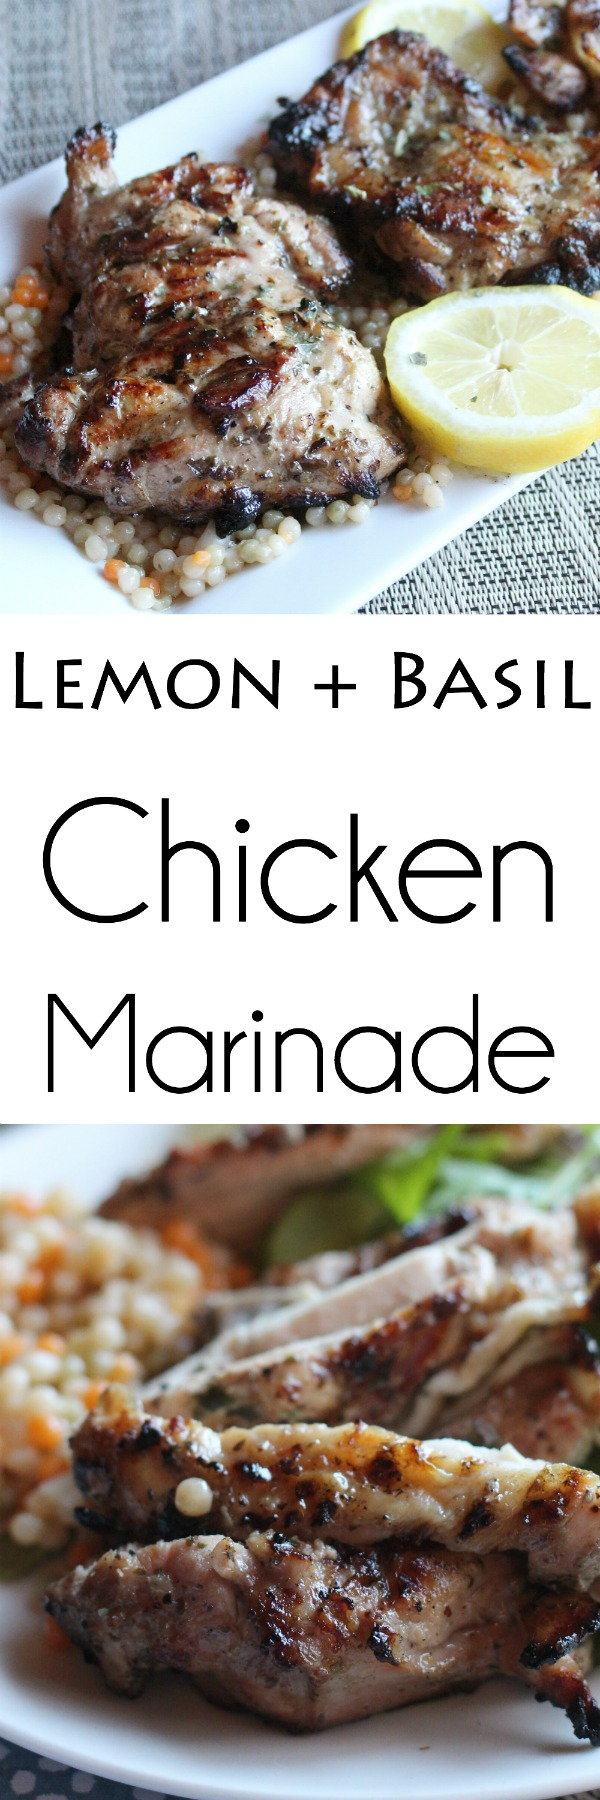 Quick and flavorful marinade for chicken or any type of meat! YUM! via @DashOfEvans